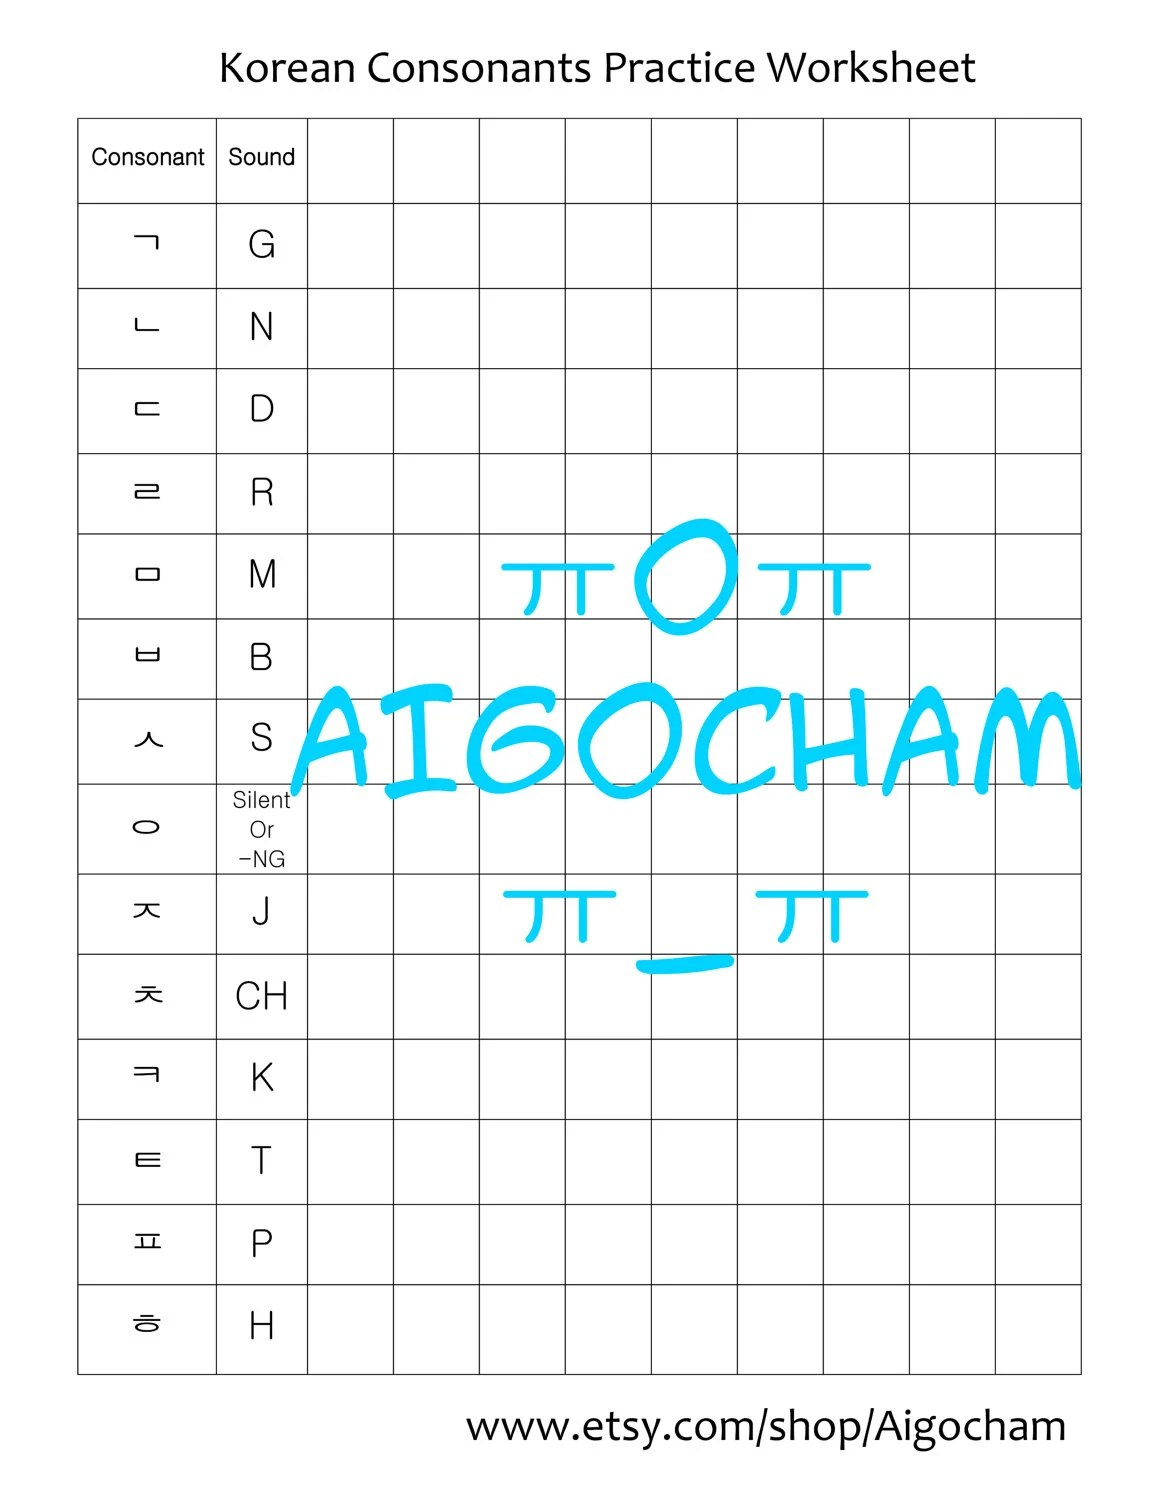 Korean Consonants Writing Practice Worksheet By Aigocham On Etsy